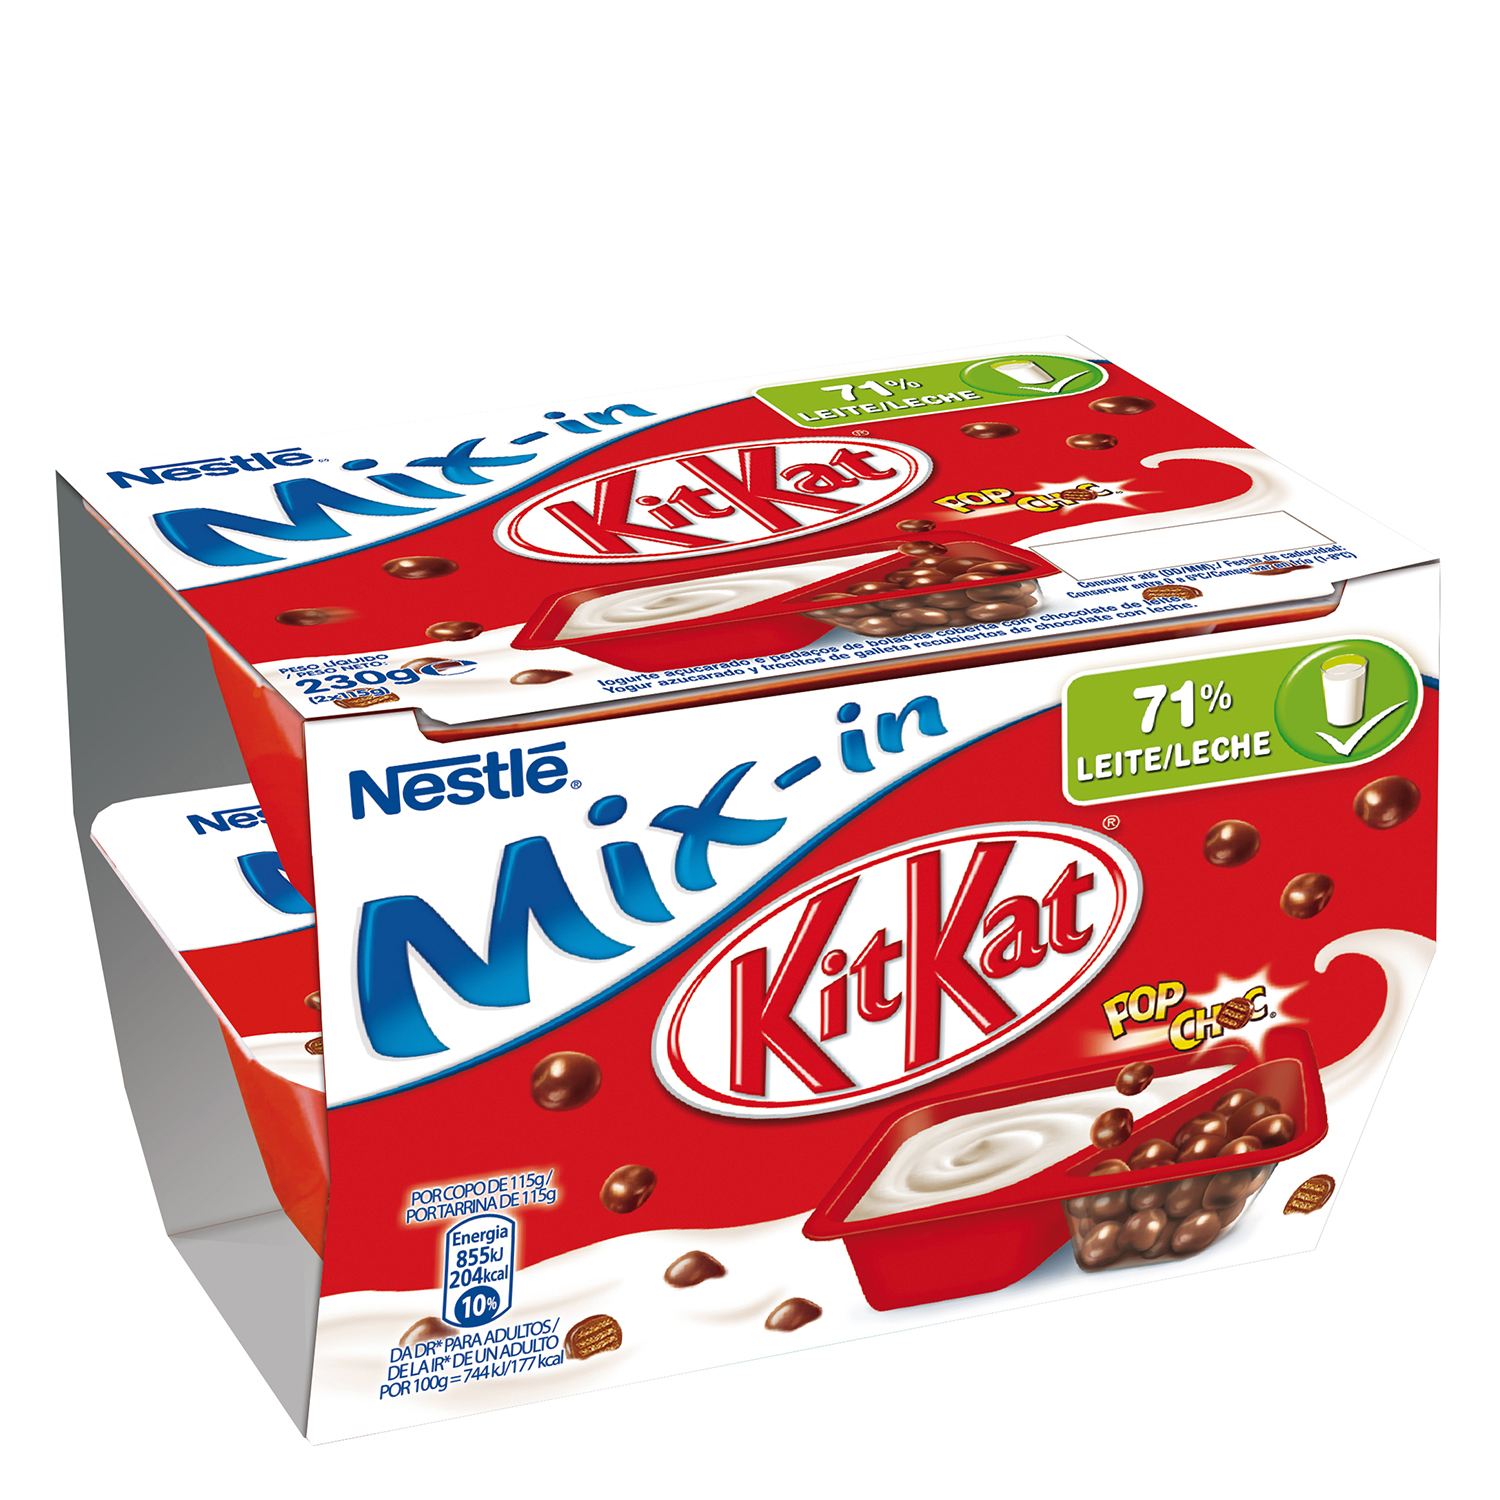 Yogur con bolitas cubiertas de chocolate Mix-in Nestlé Kit Kat pack de 2 unidades de 115 g.